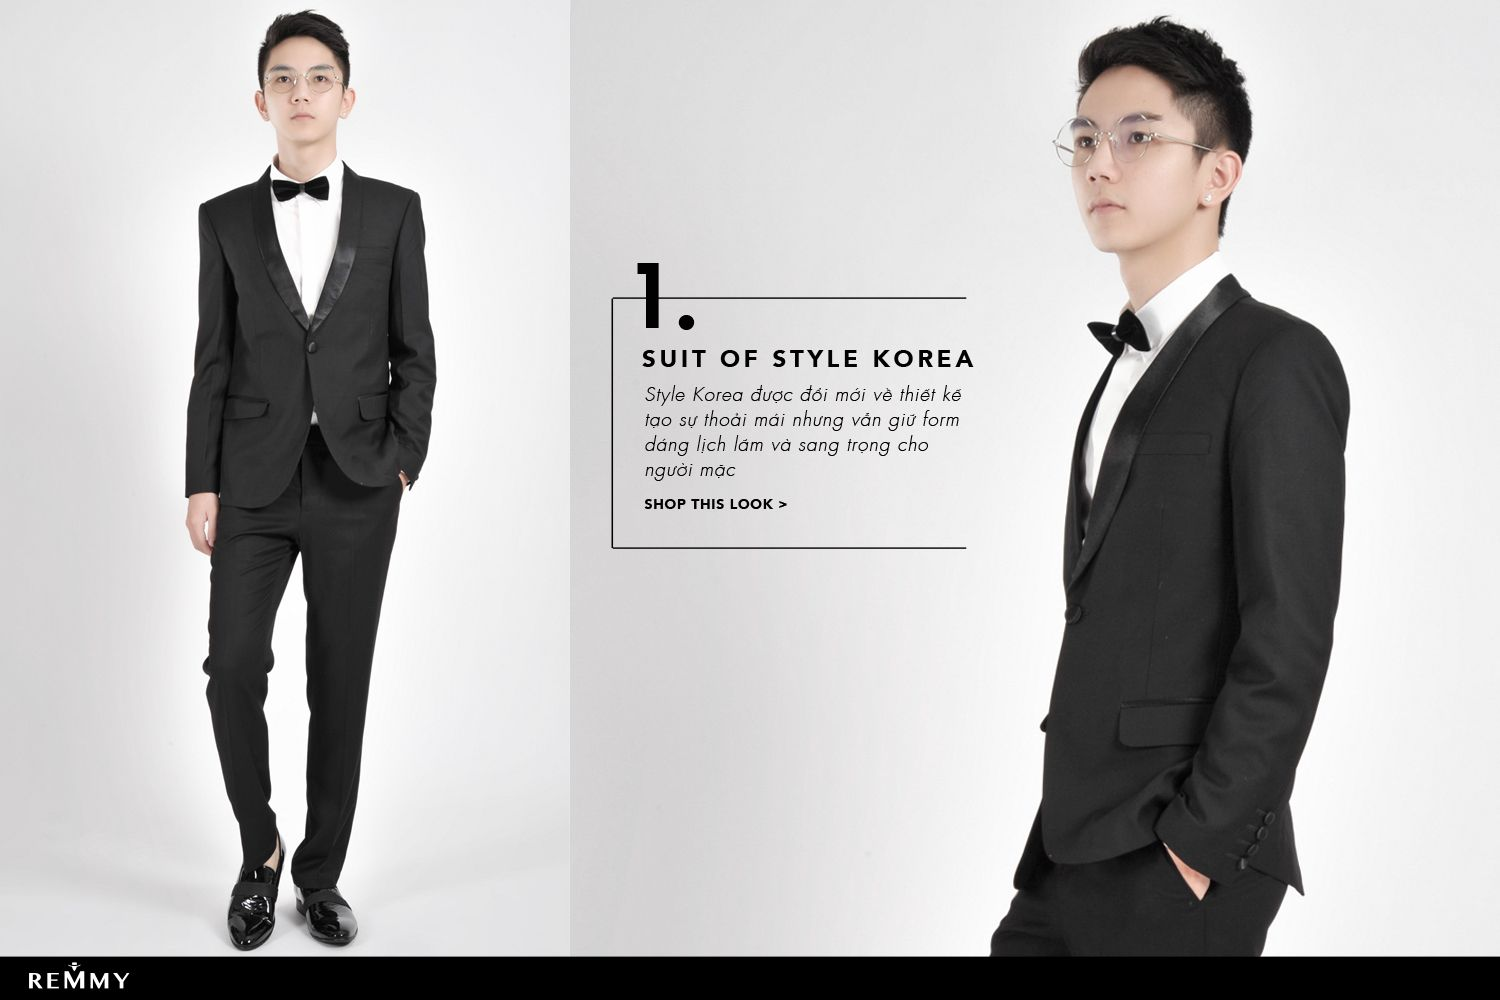 Suit of Style Korea